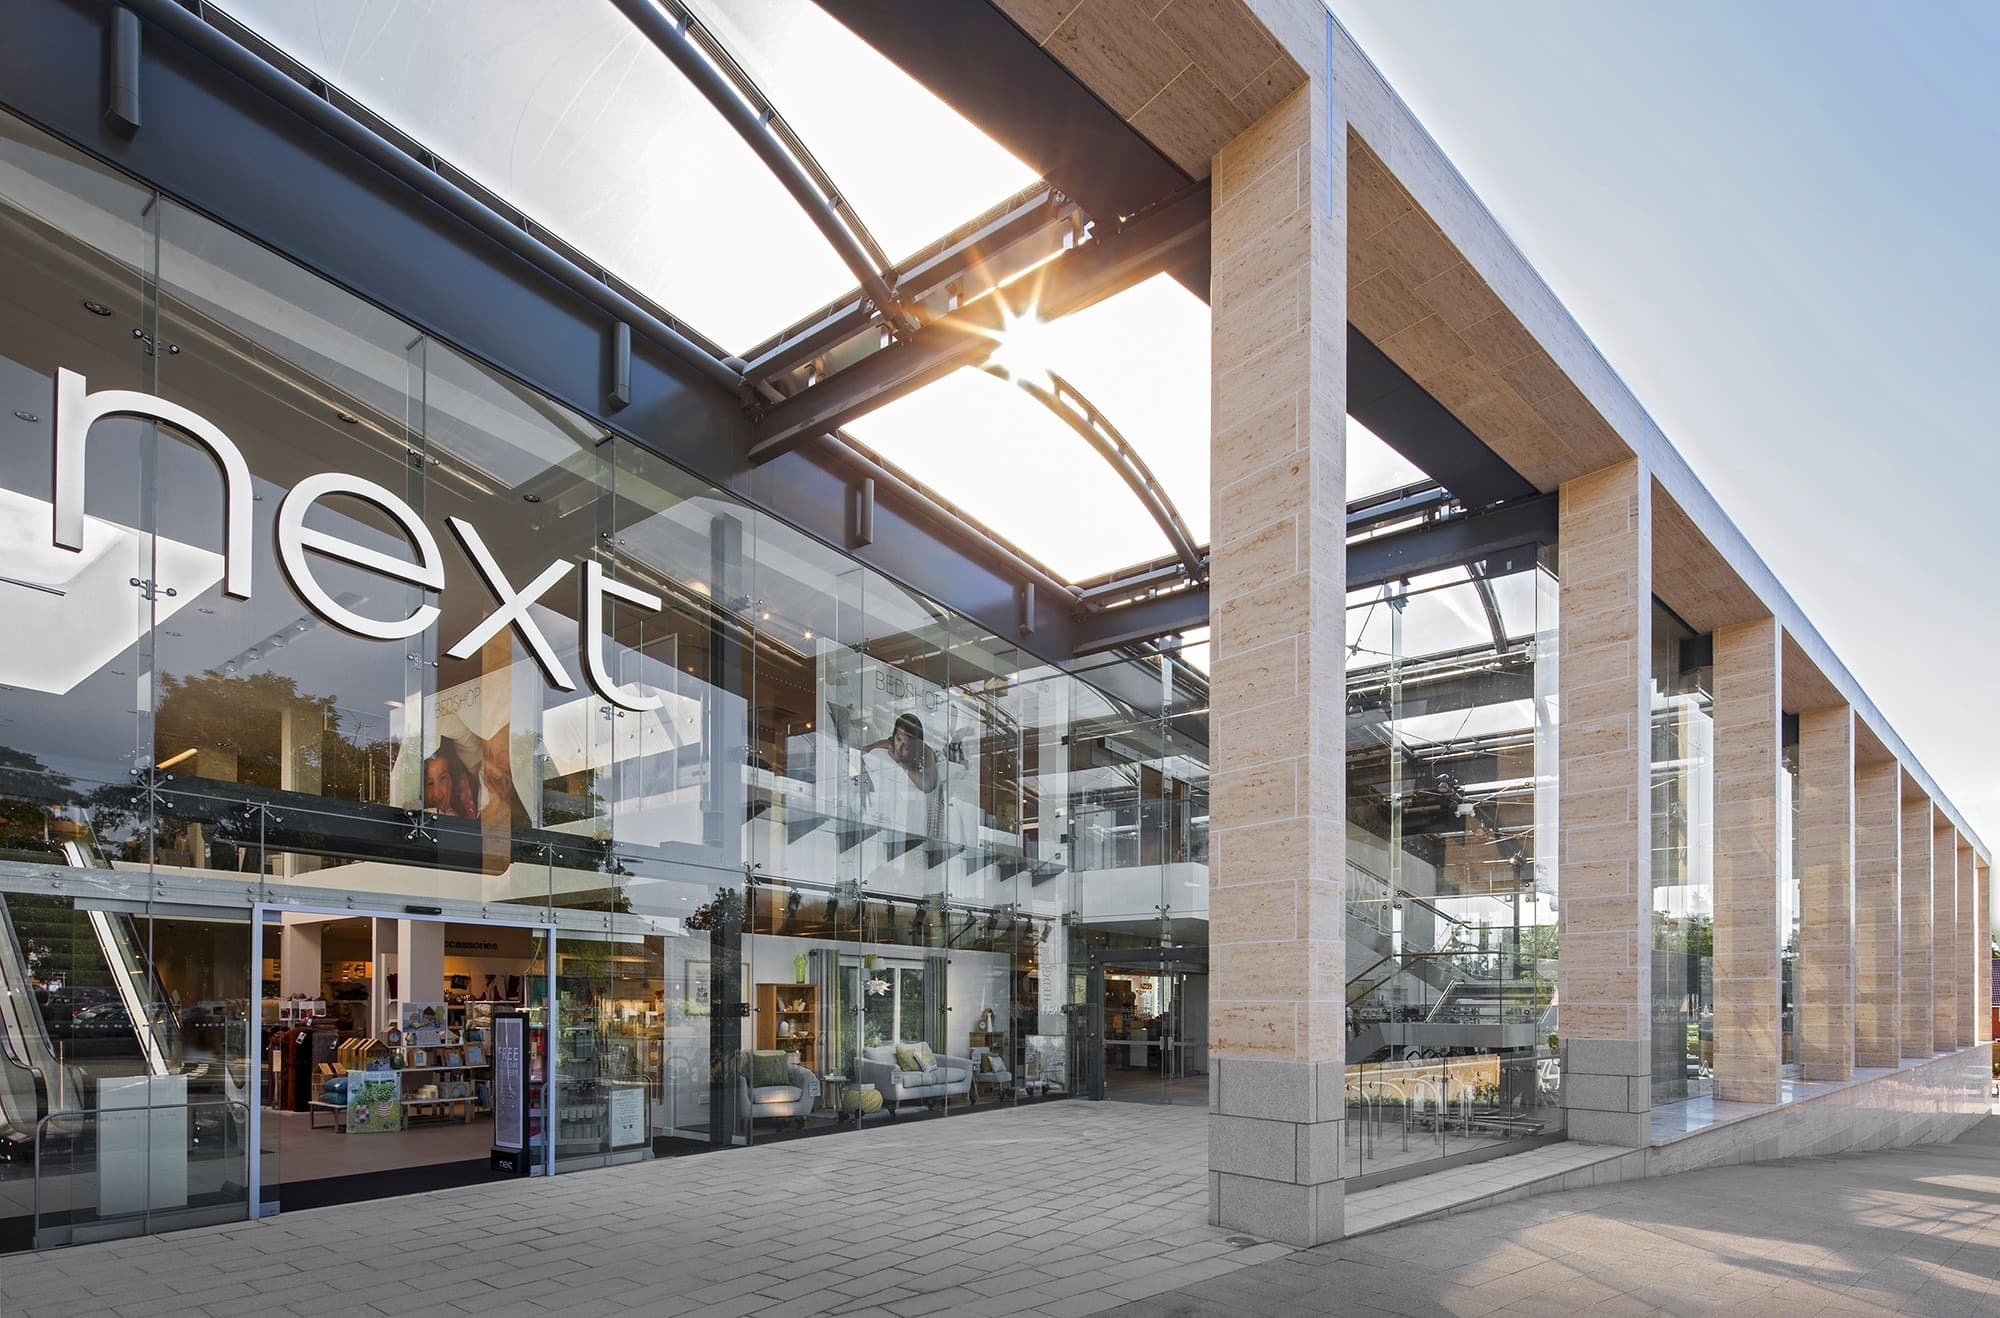 retail lighting design: Next exterior